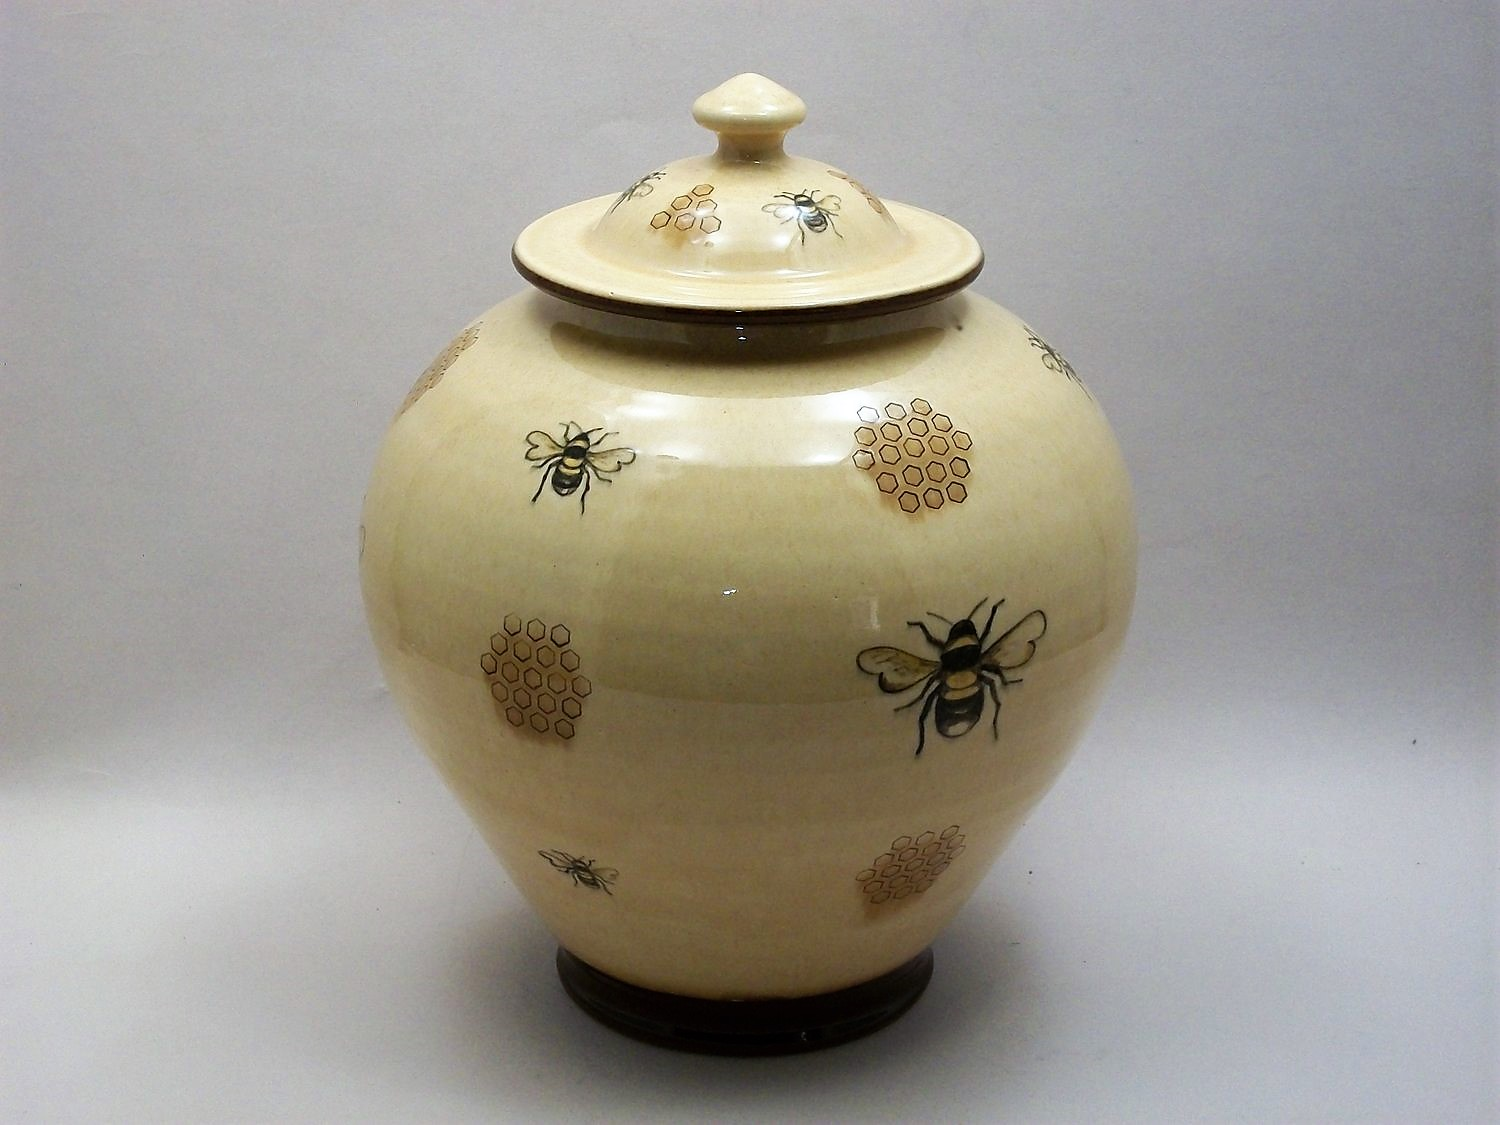 Tim Worthington. Pale Yellow Bee Jar. Lantz clay. Underglaze hand painted decoration on a white clay slip background, covered with a pale transparent yellow glaze. 26.7 cm.